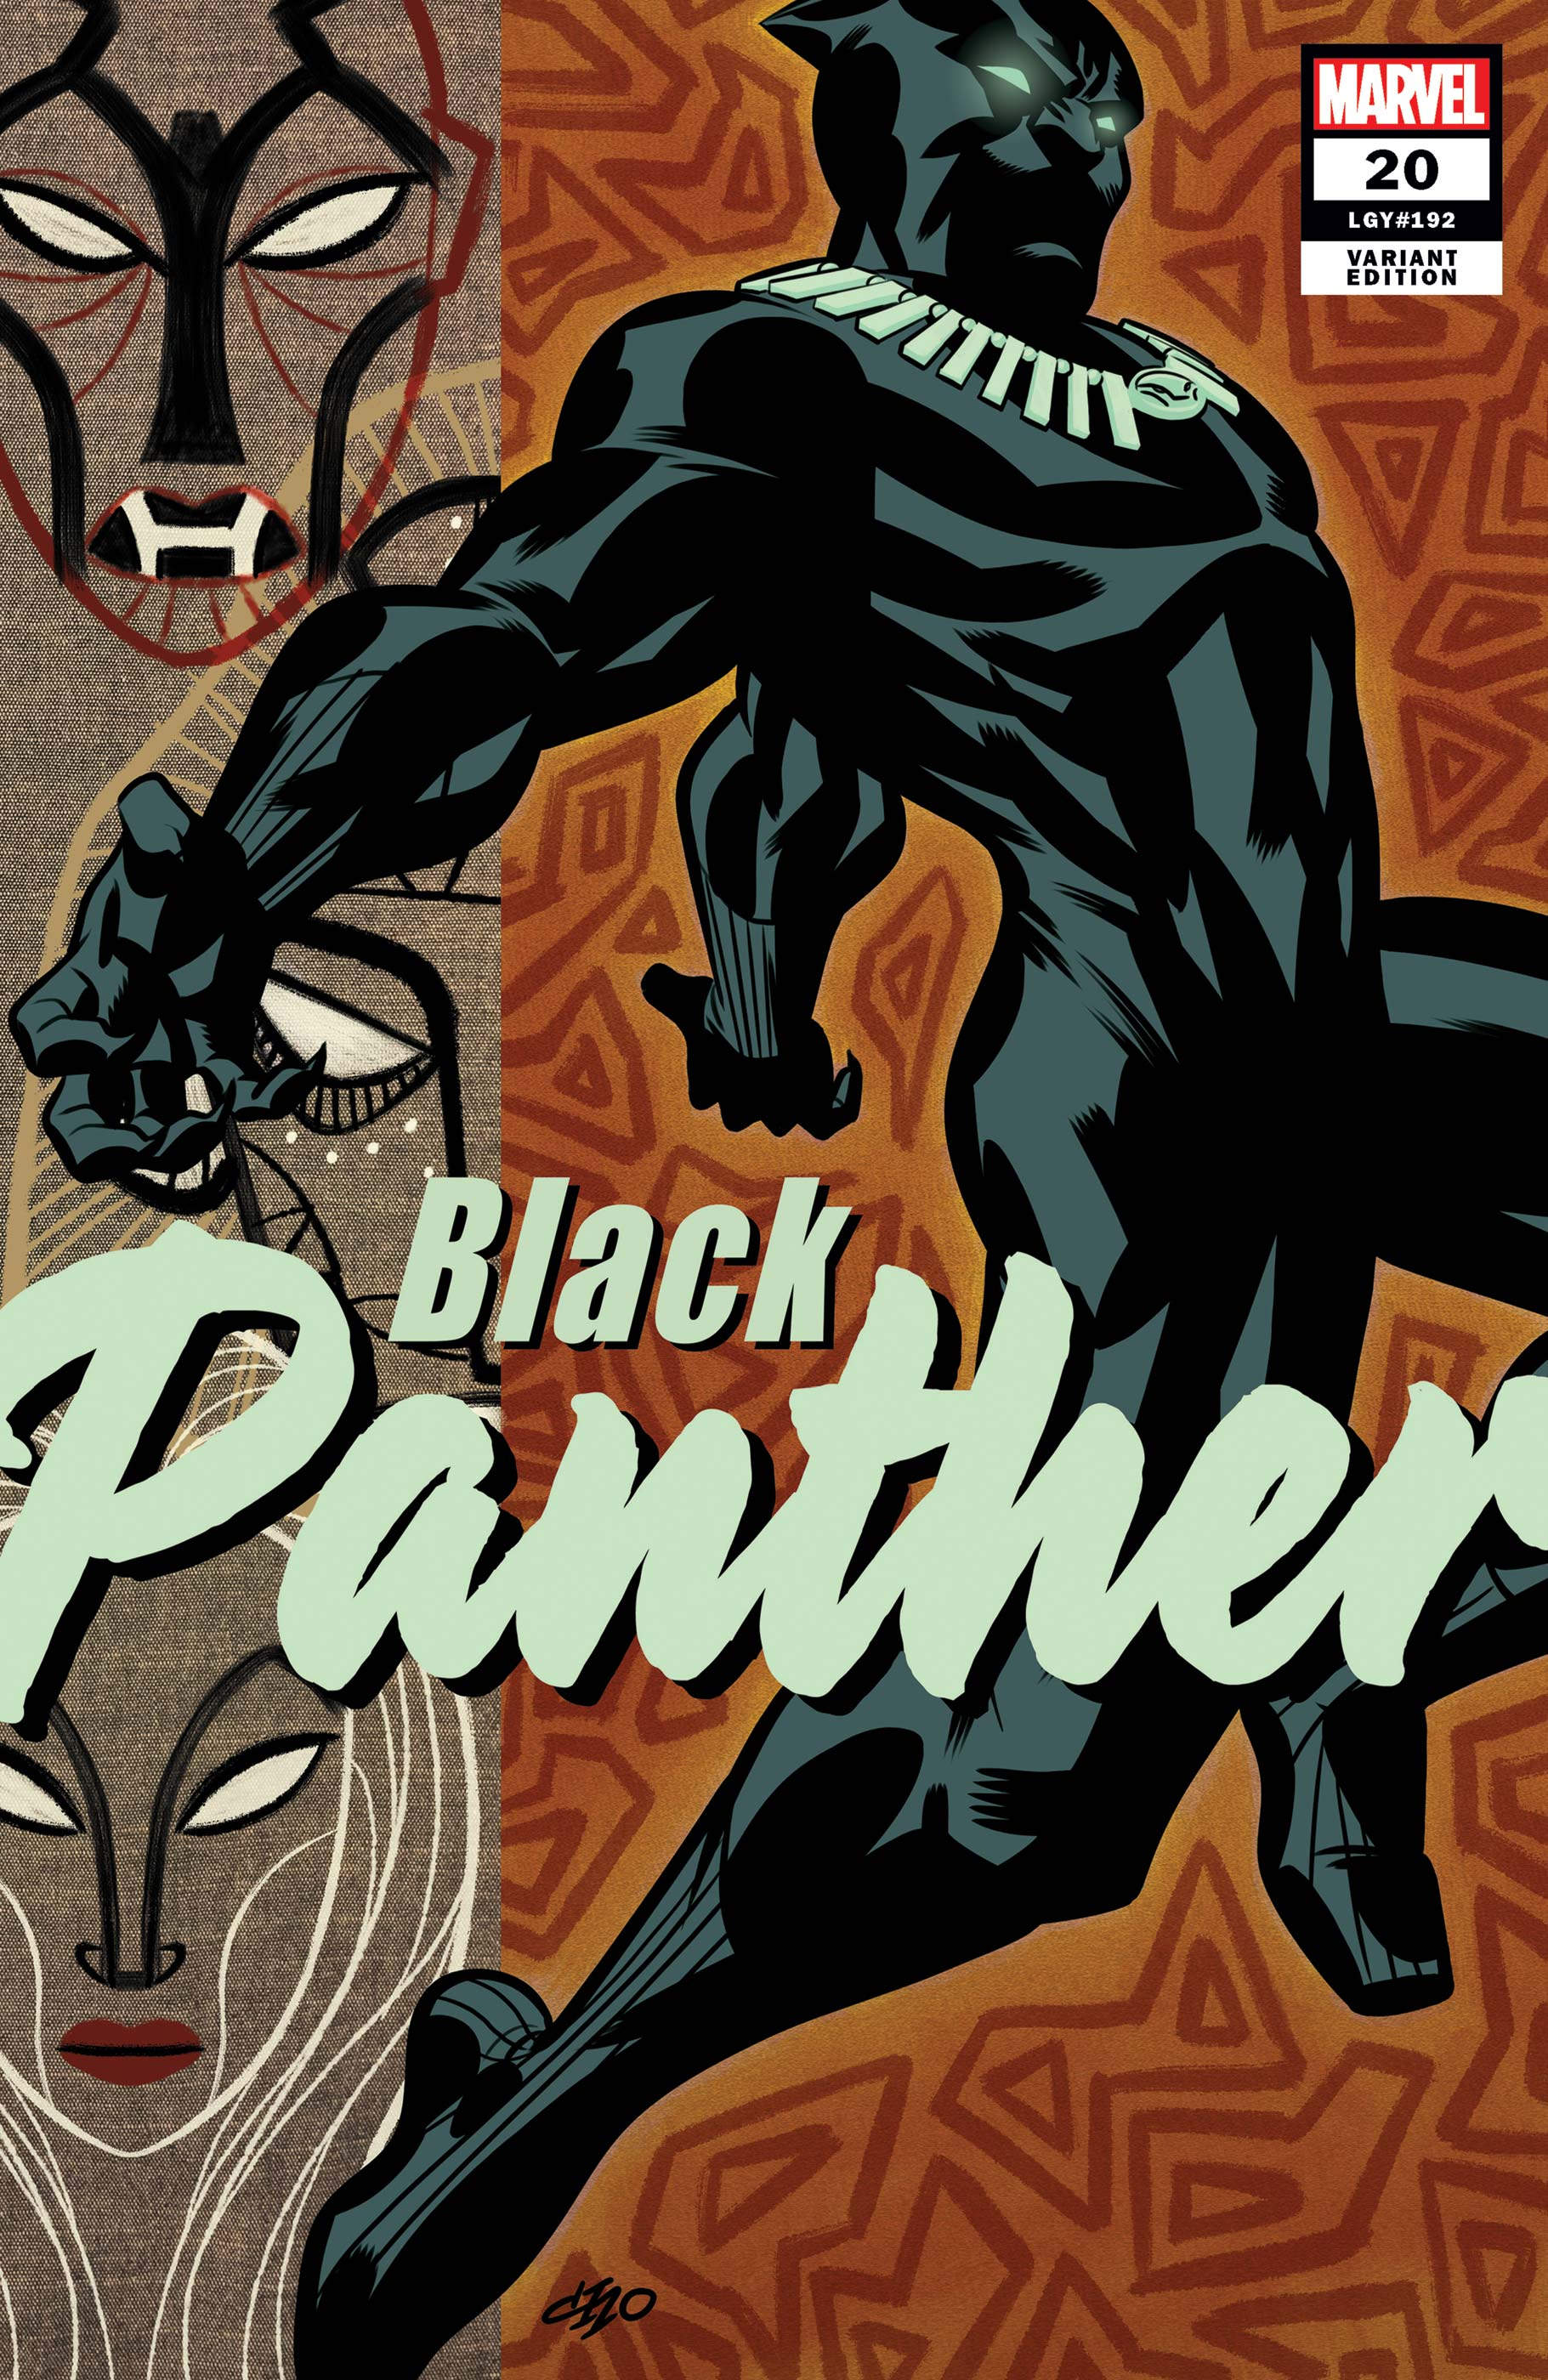 Black Panther (2018) #20 (Variant)